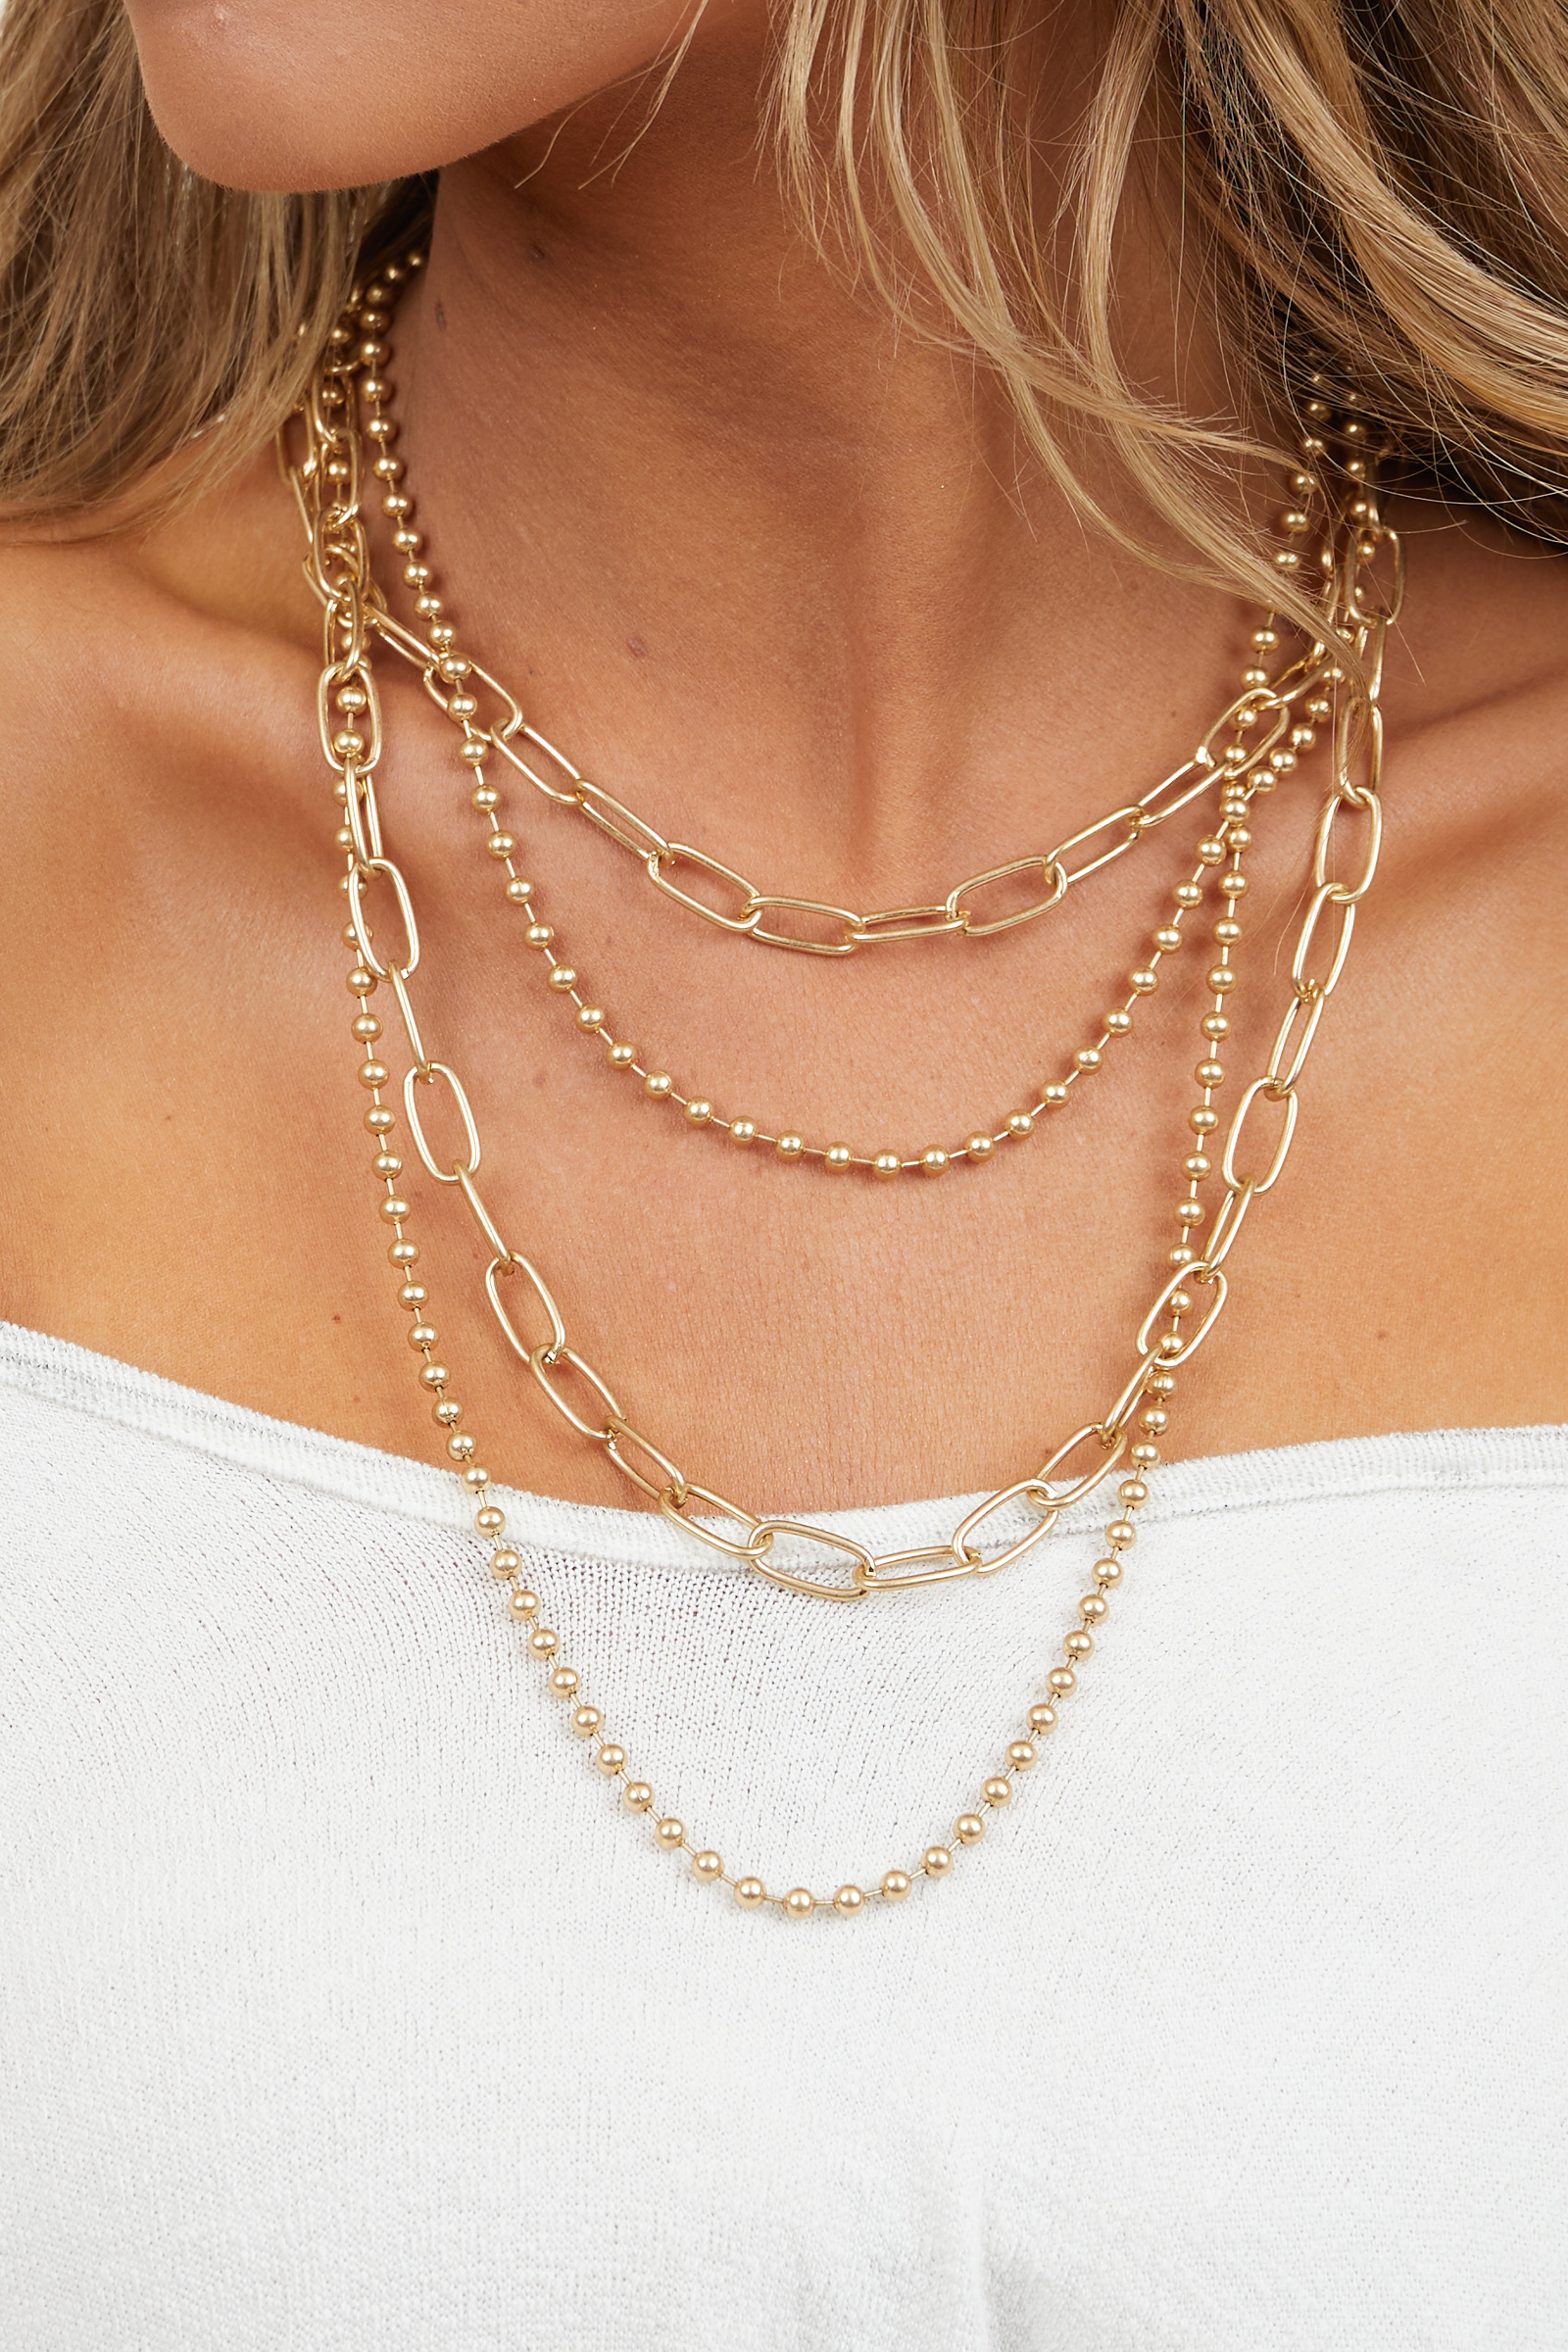 Gold Chain Layered Necklace with Various Chain Styles